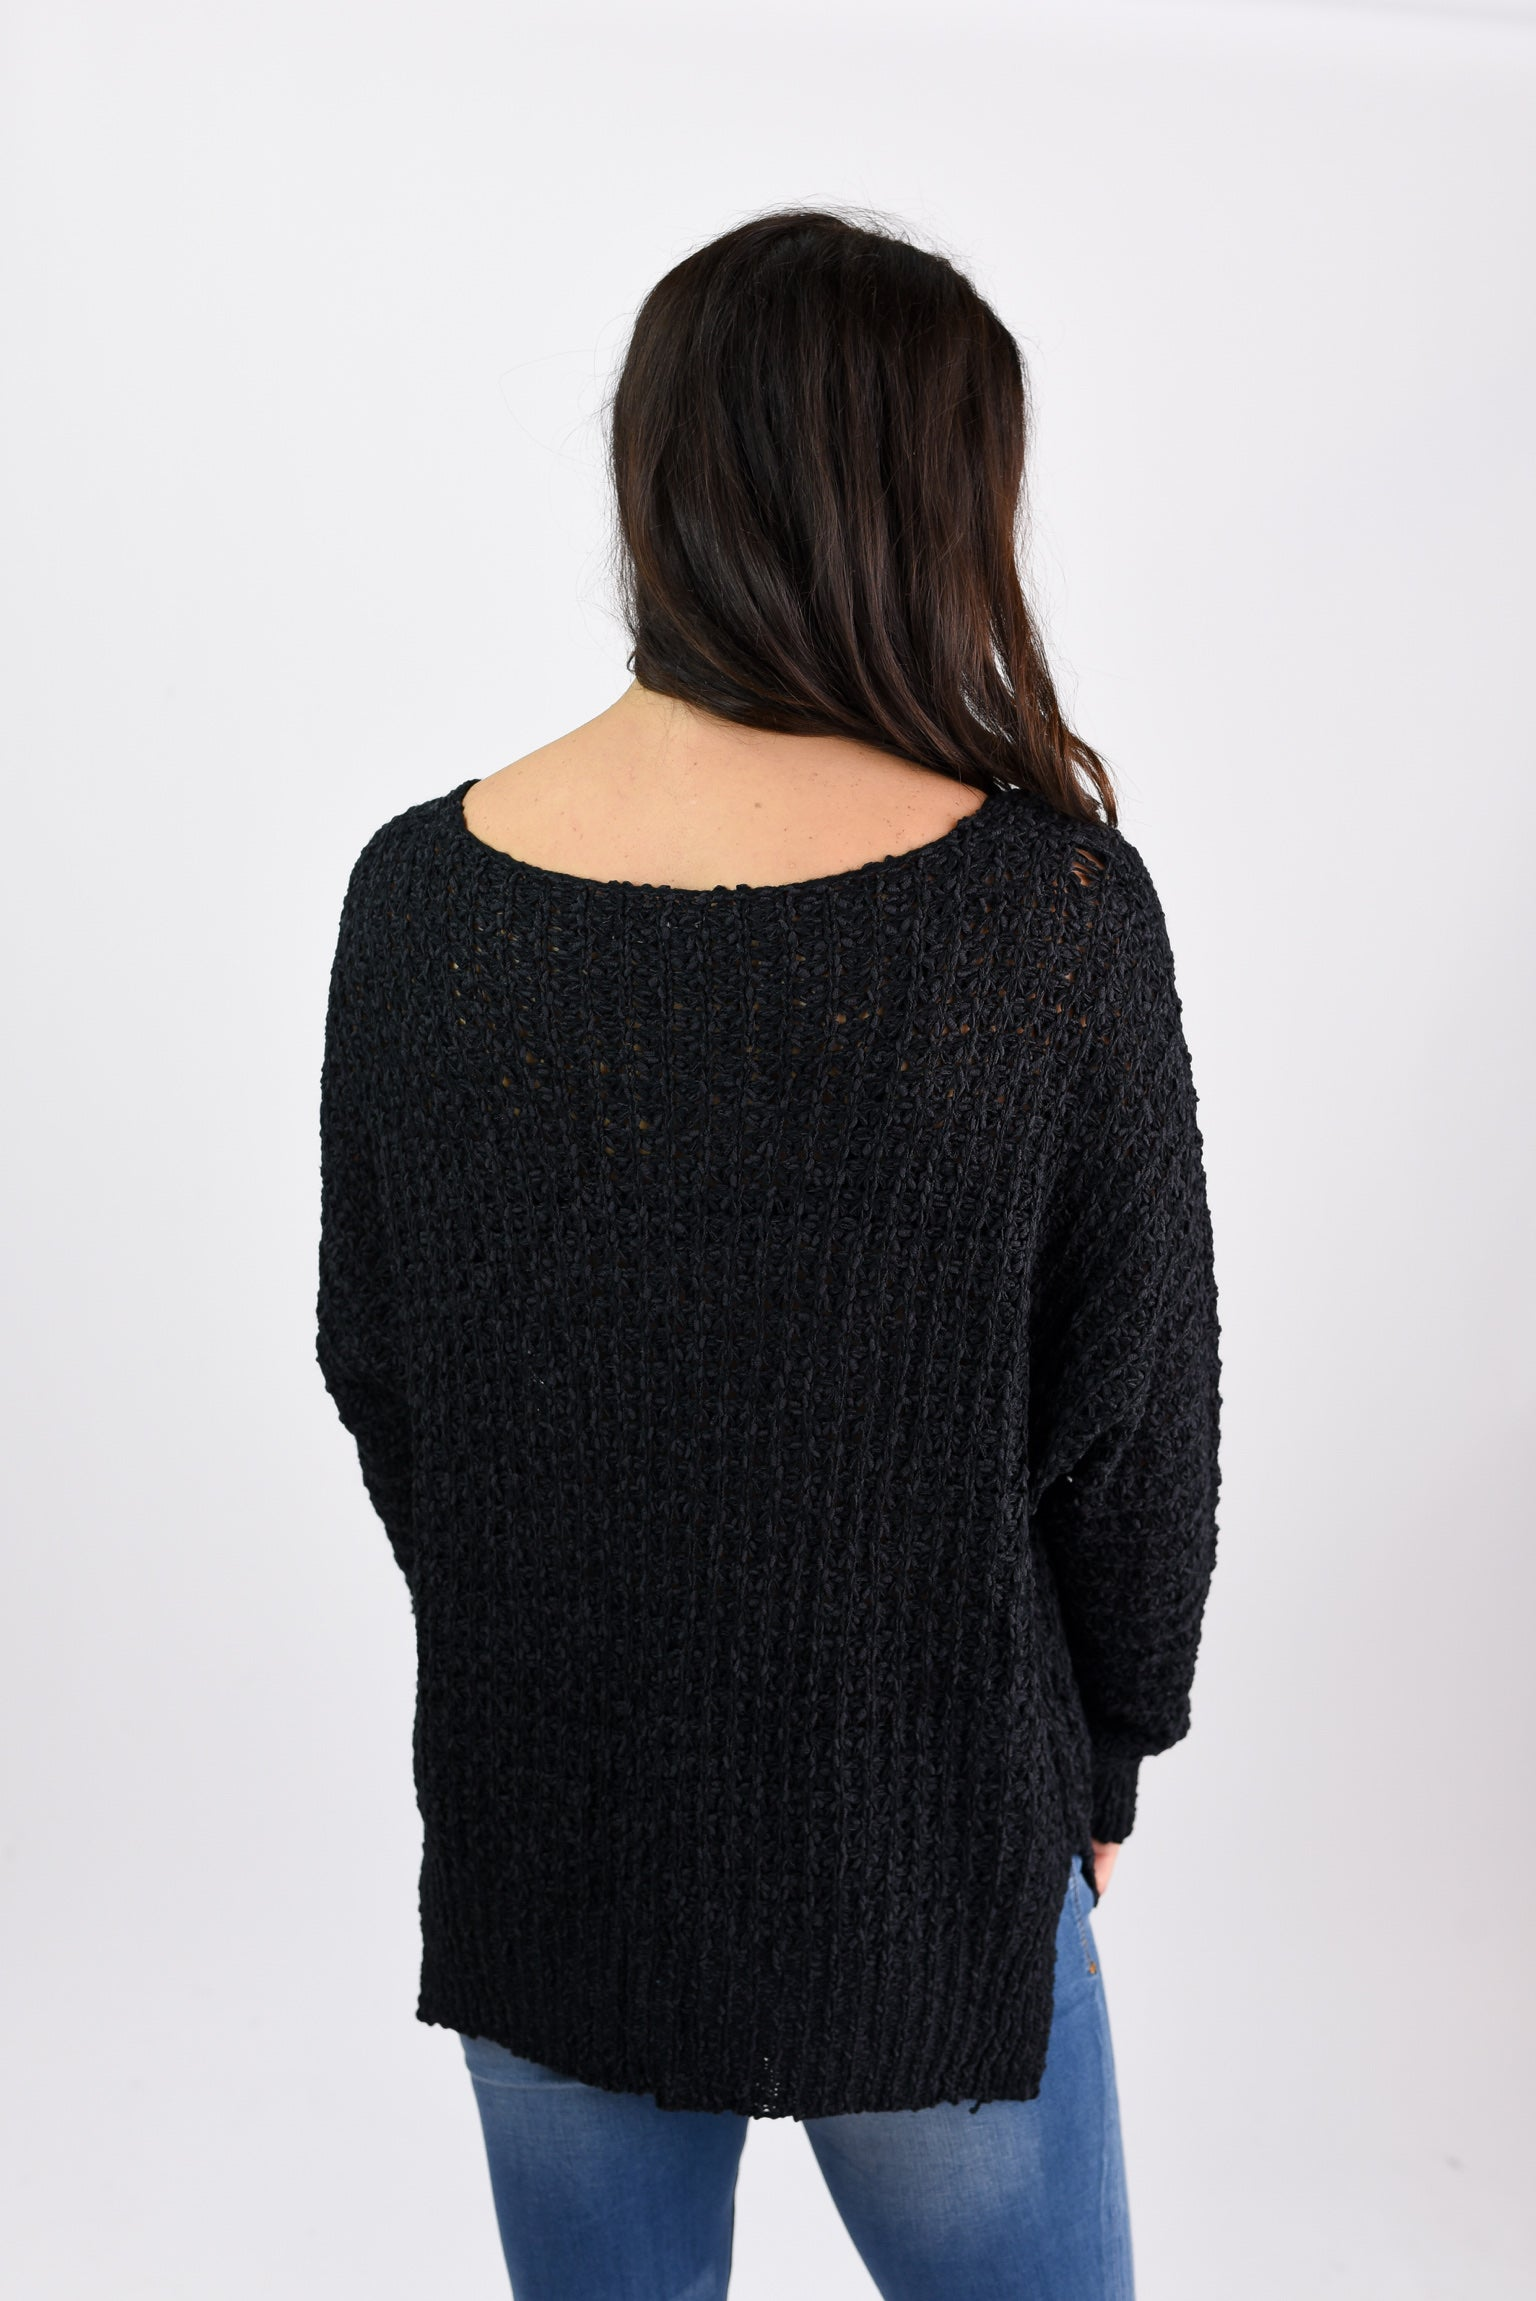 All I Want Loose Knit V-neck Sweater- Black